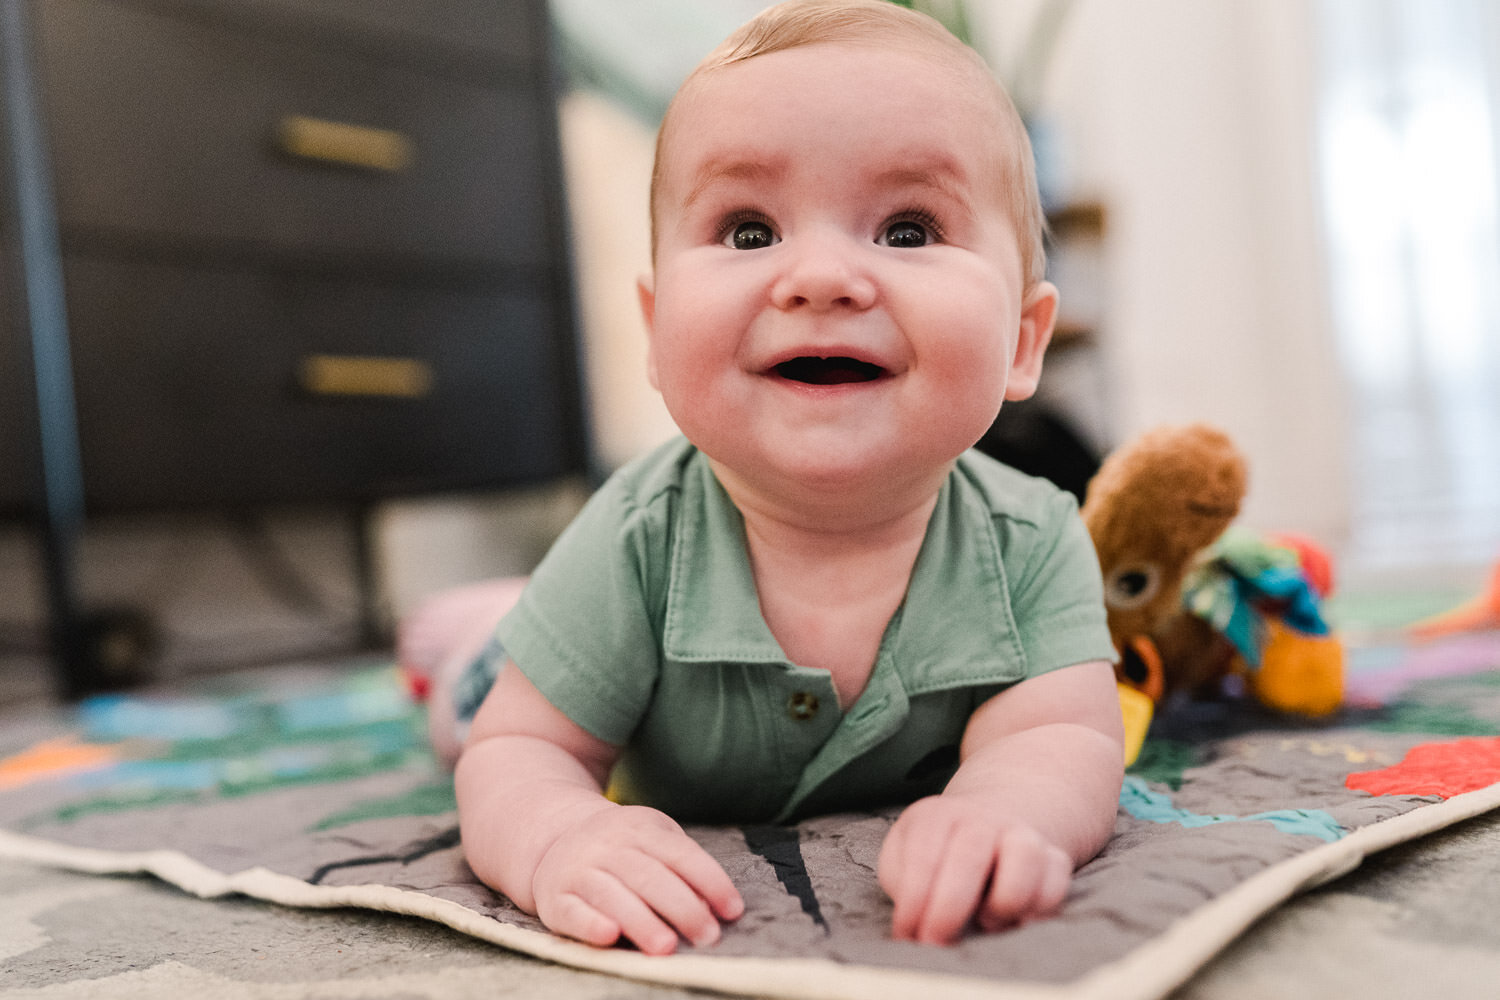 A baby smiles from his play mat.